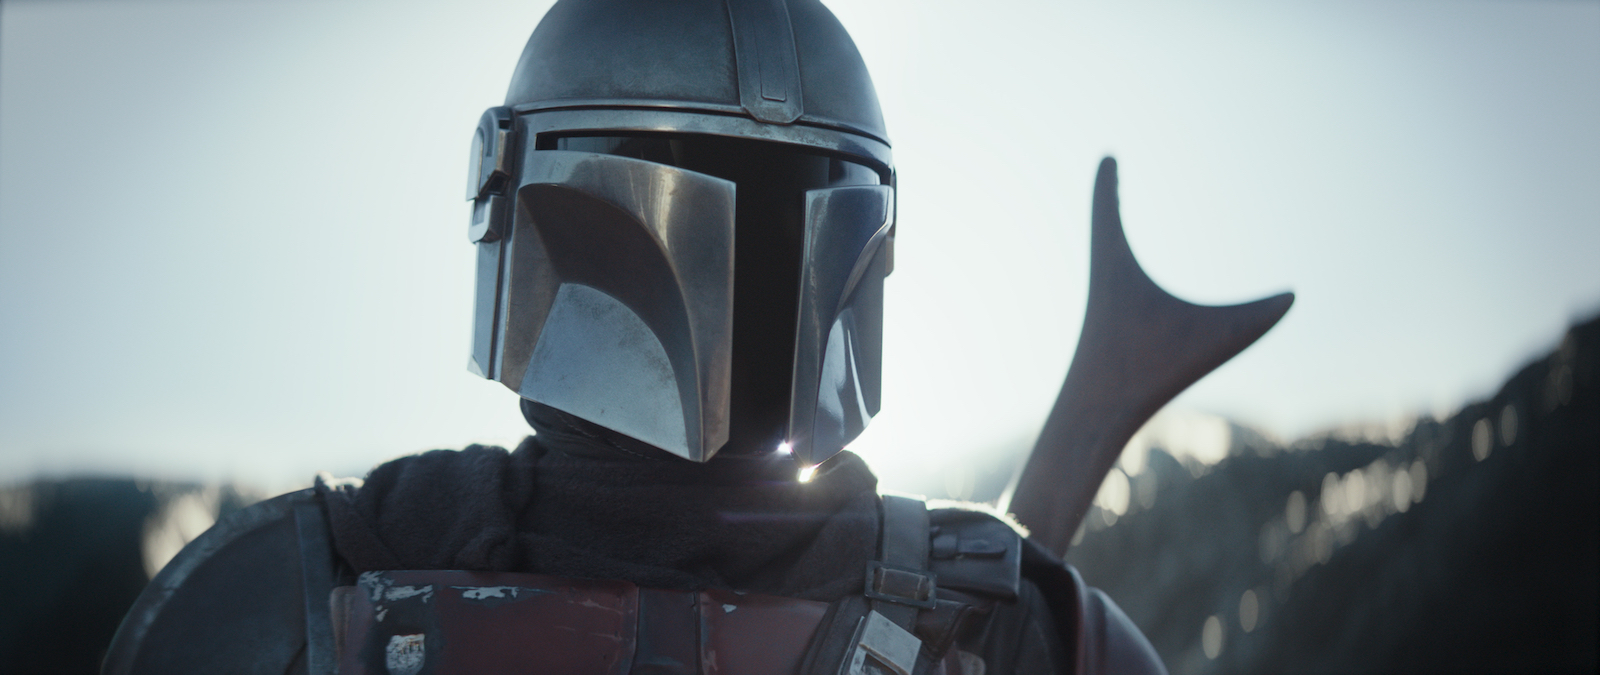 Despite Starring as 'The Mandalorian,' Pedro Pascal Didn't Wear the Helmet as Much as This Guy